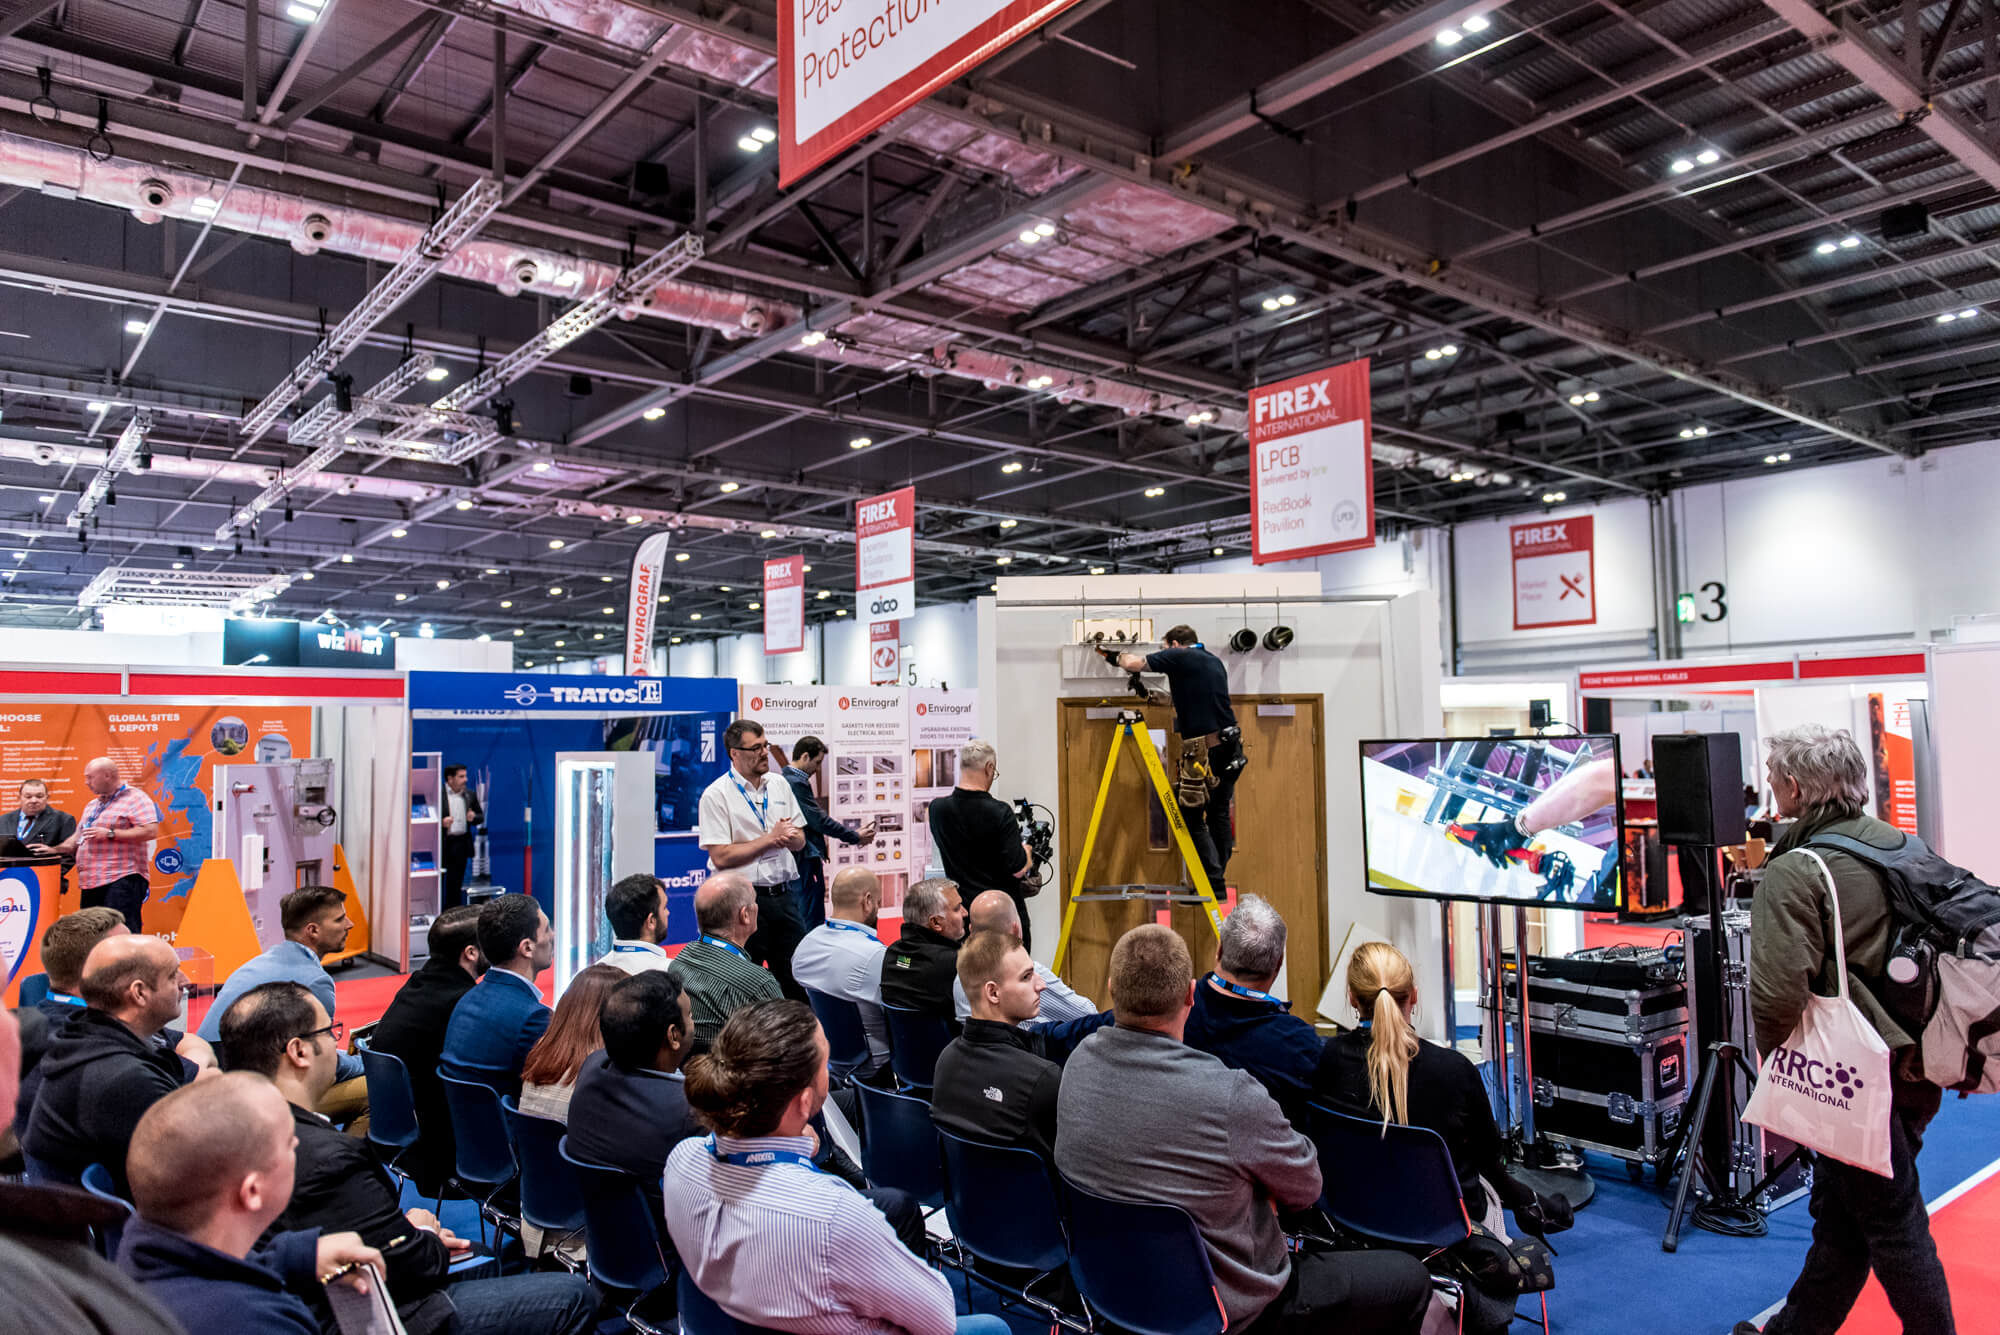 An Installer demonstrating their product at FIREX 2019